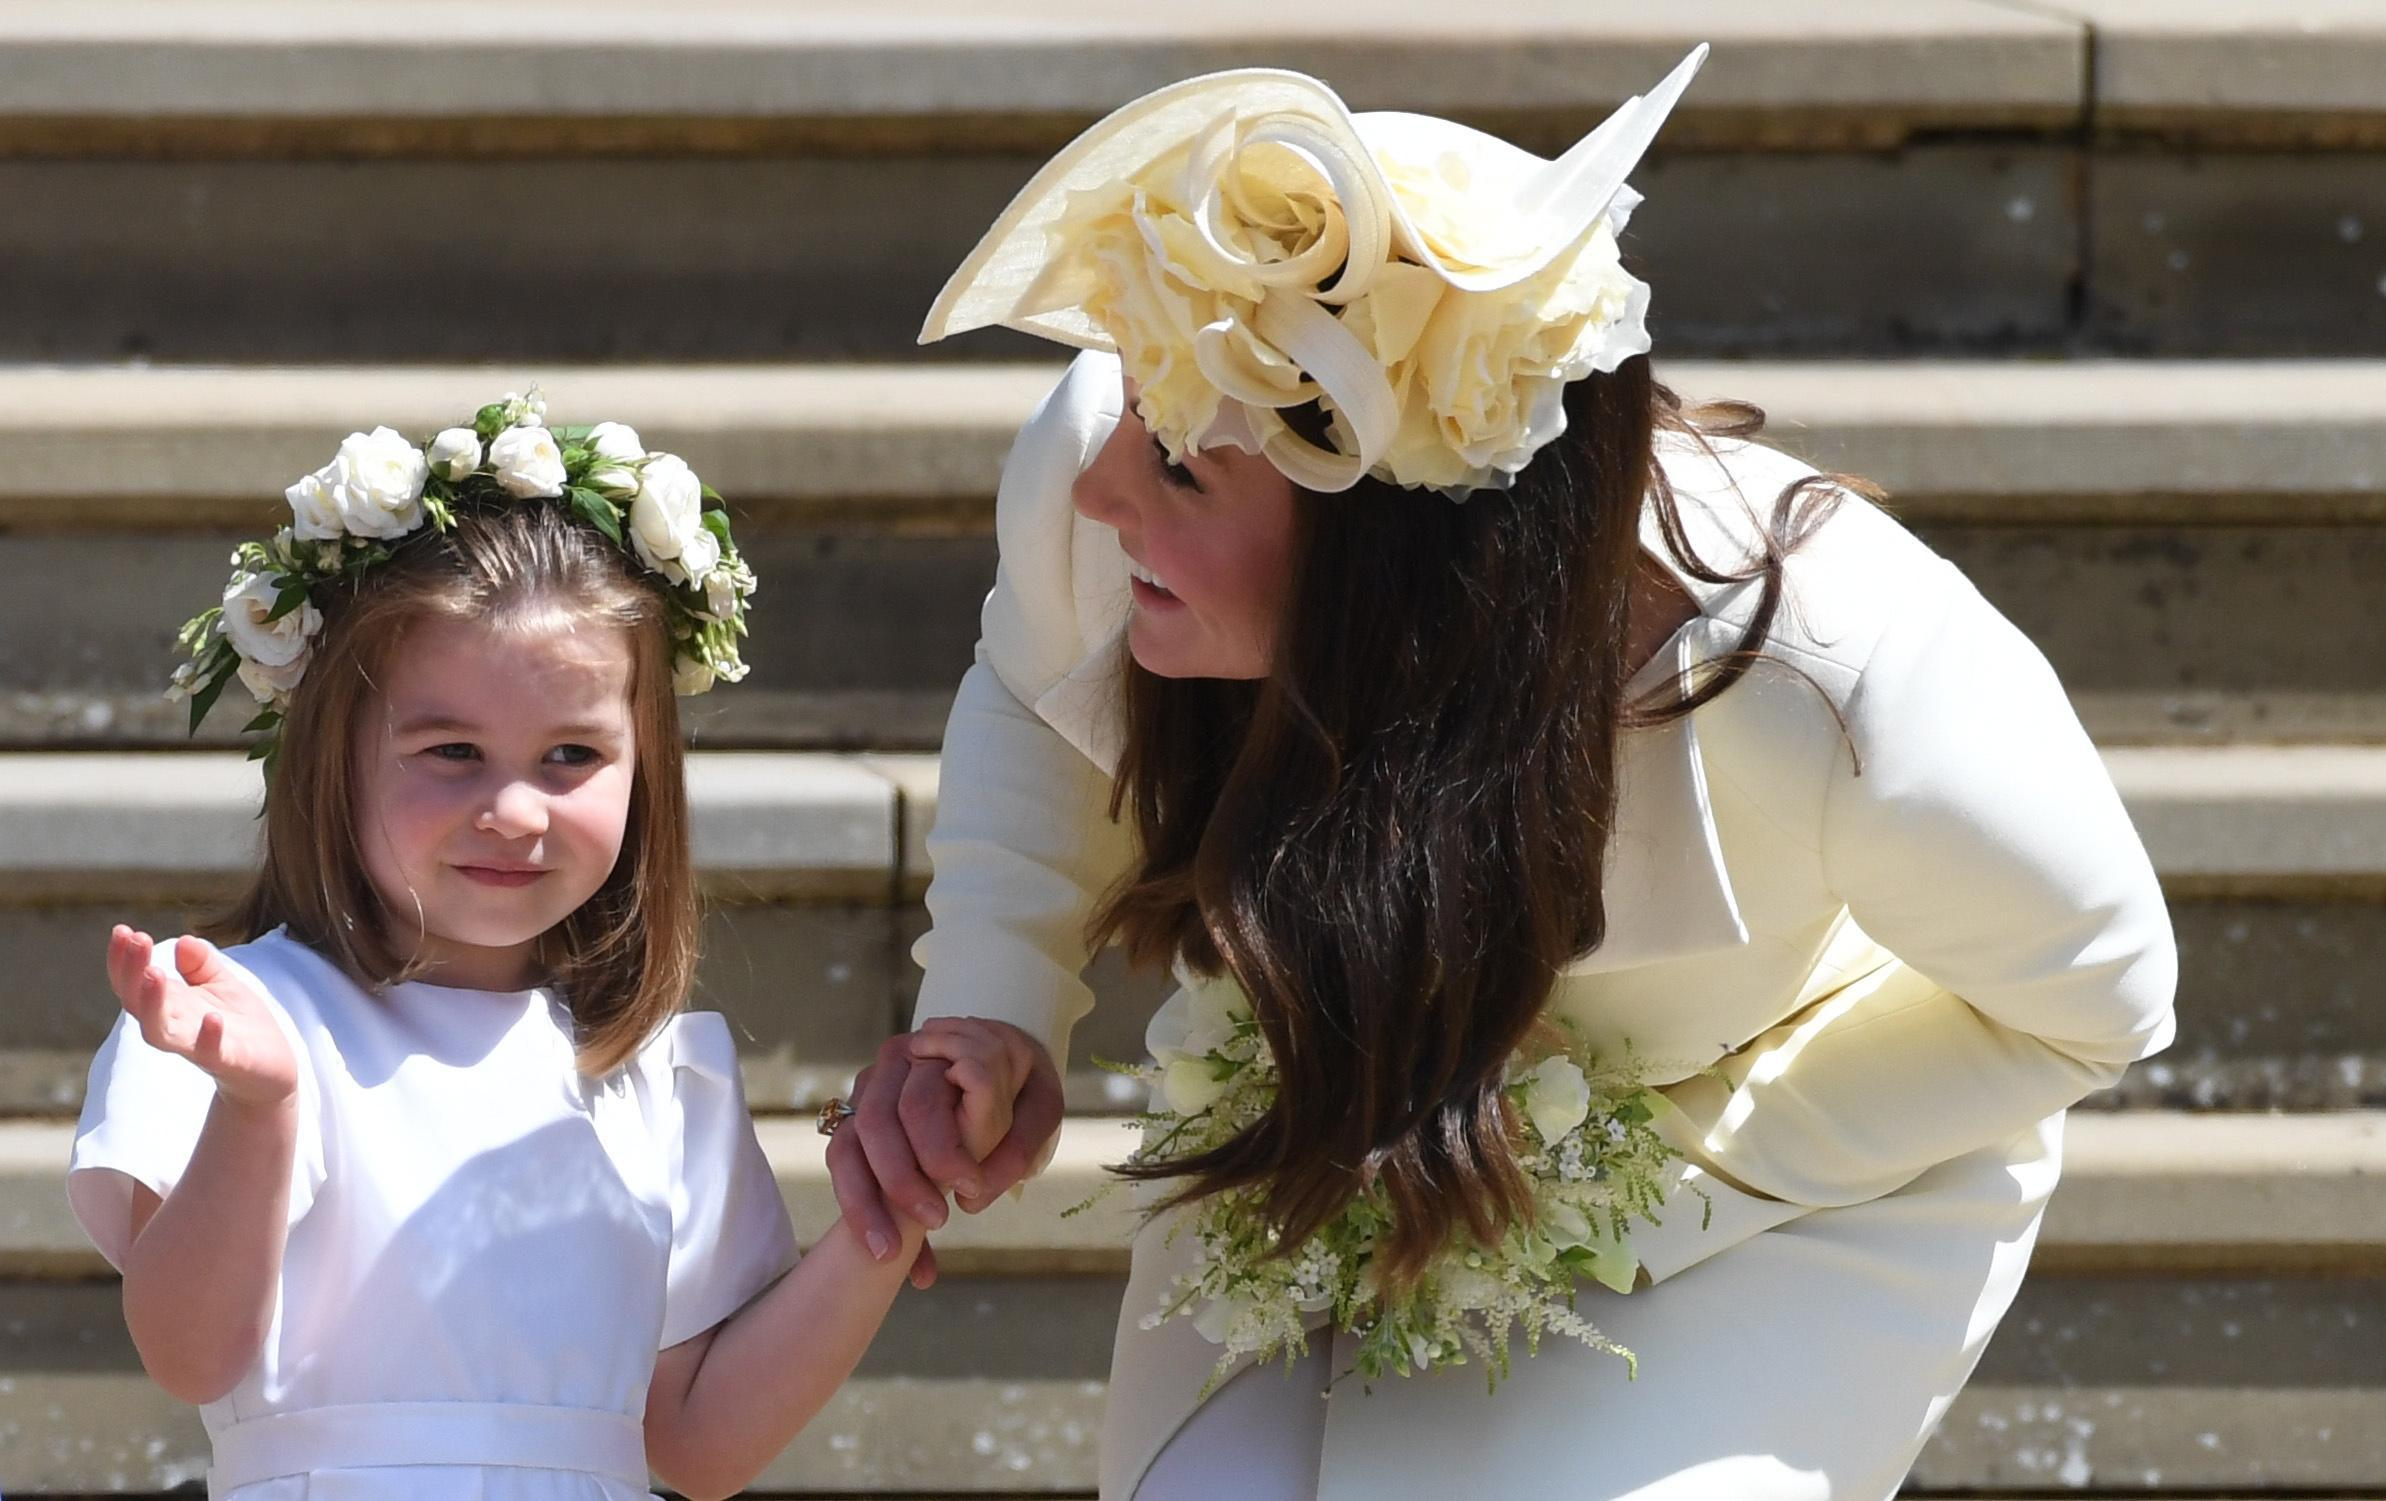 Kate Middleton con cappello da cerimonia con rose